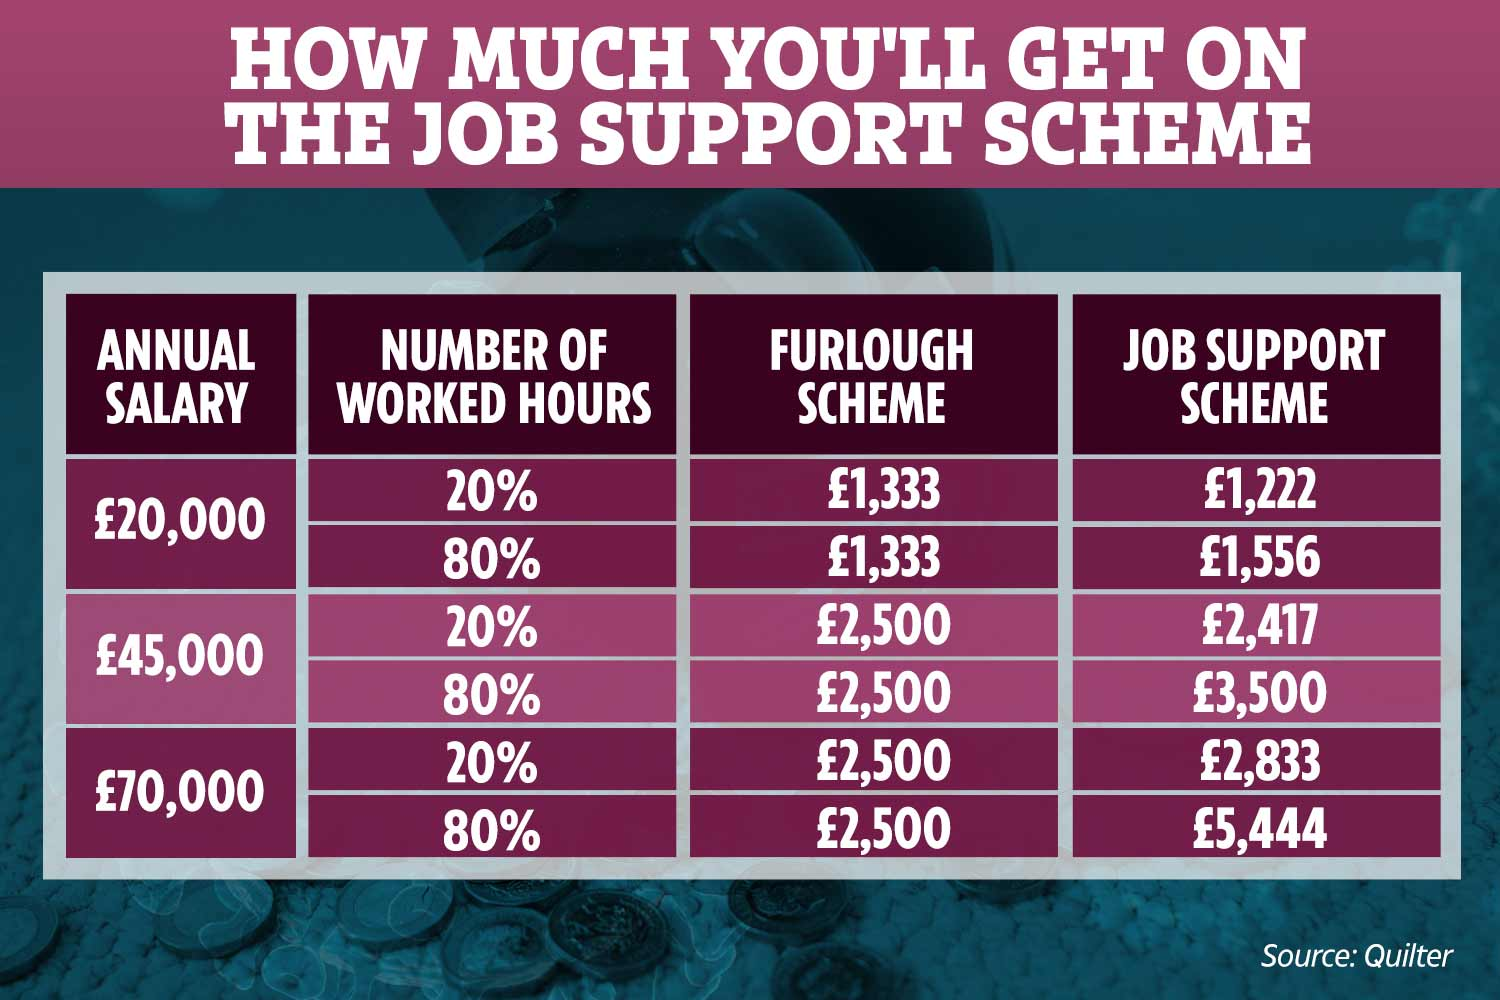 Employees earning £70,000 will see wages rise to £5,444 on the Job Support Scheme if they work 80%, compared to £2,500 on furlough